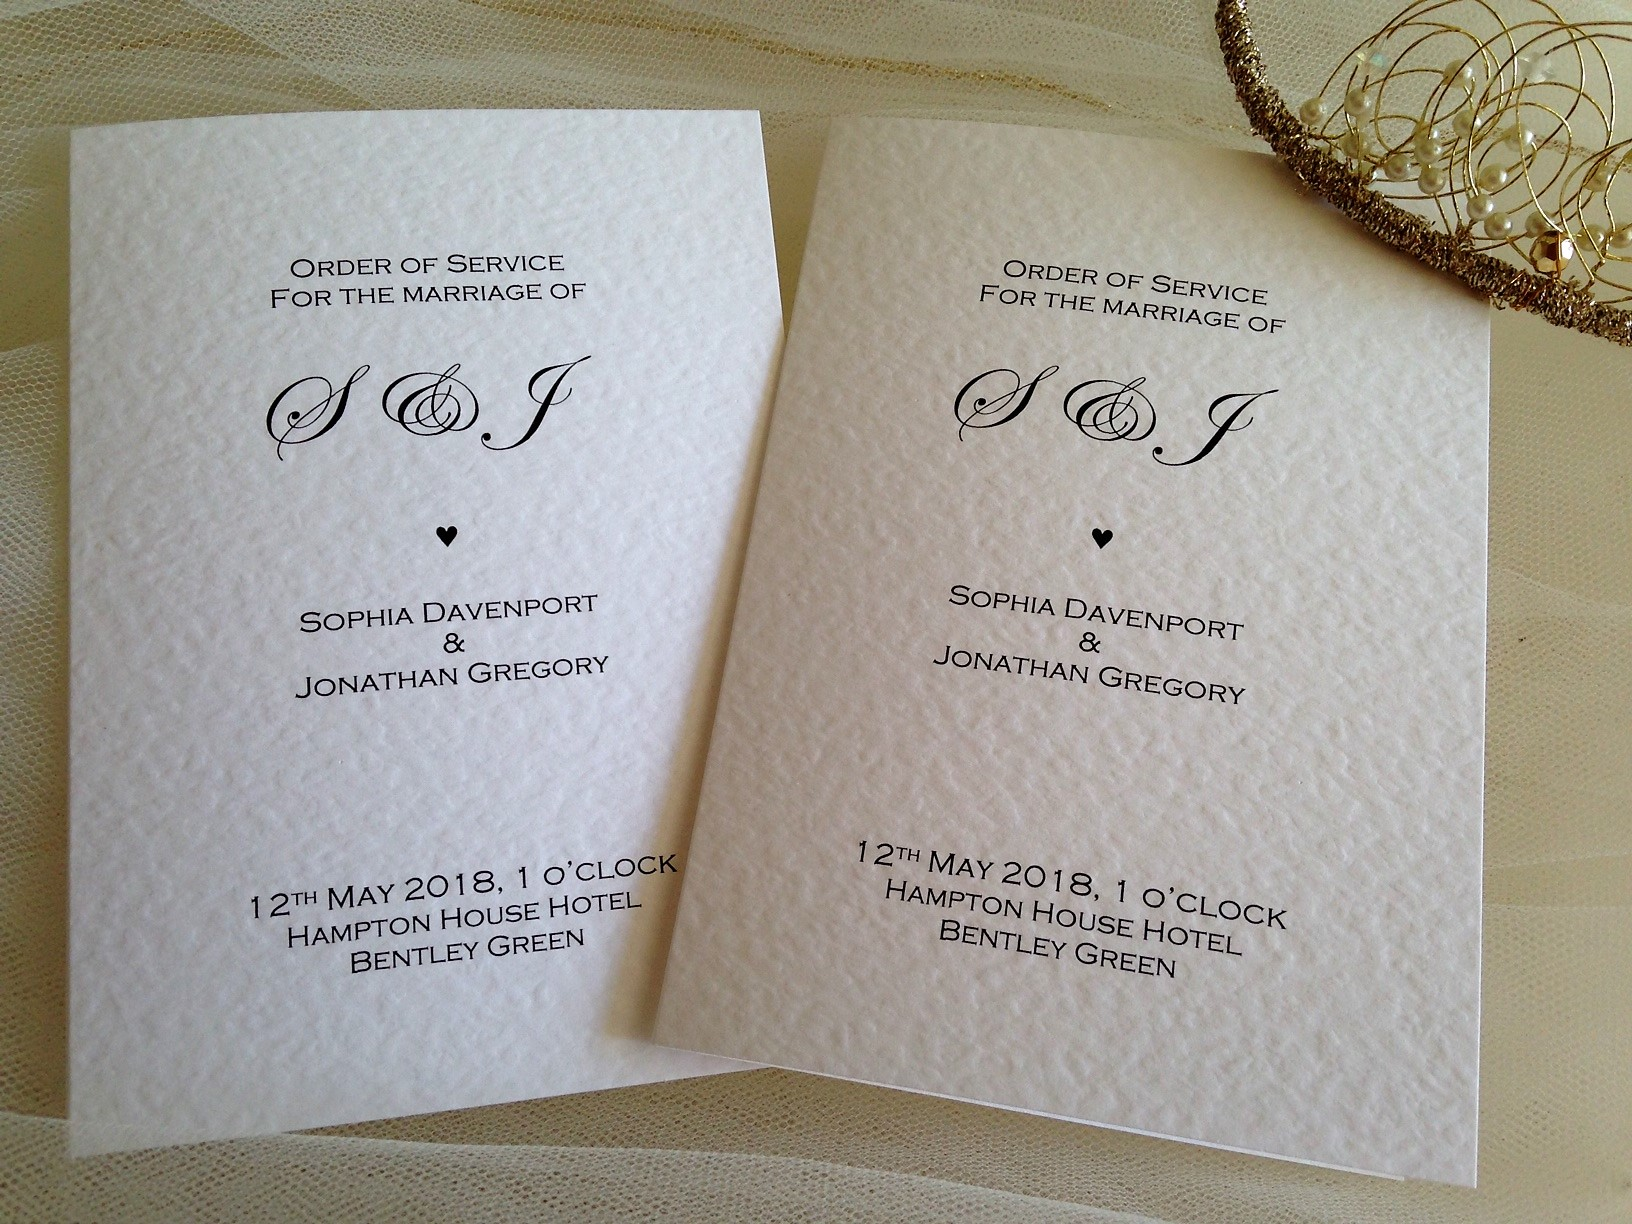 christian wedding order of service template - order of service wedding template daisy chain invites